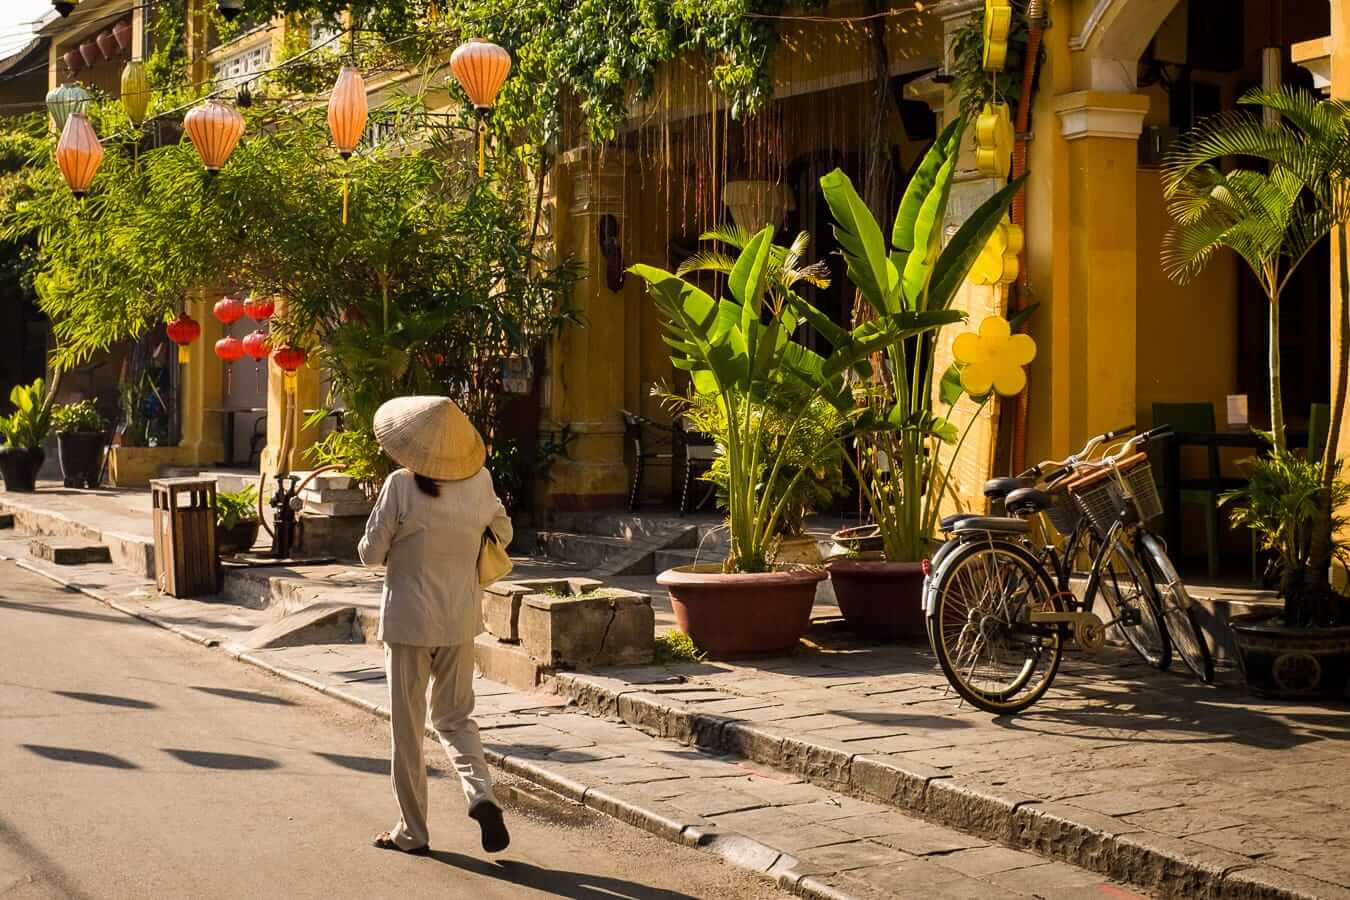 Sun-soaked streets of Hoi An: Ho Chi Minh to Hoi An